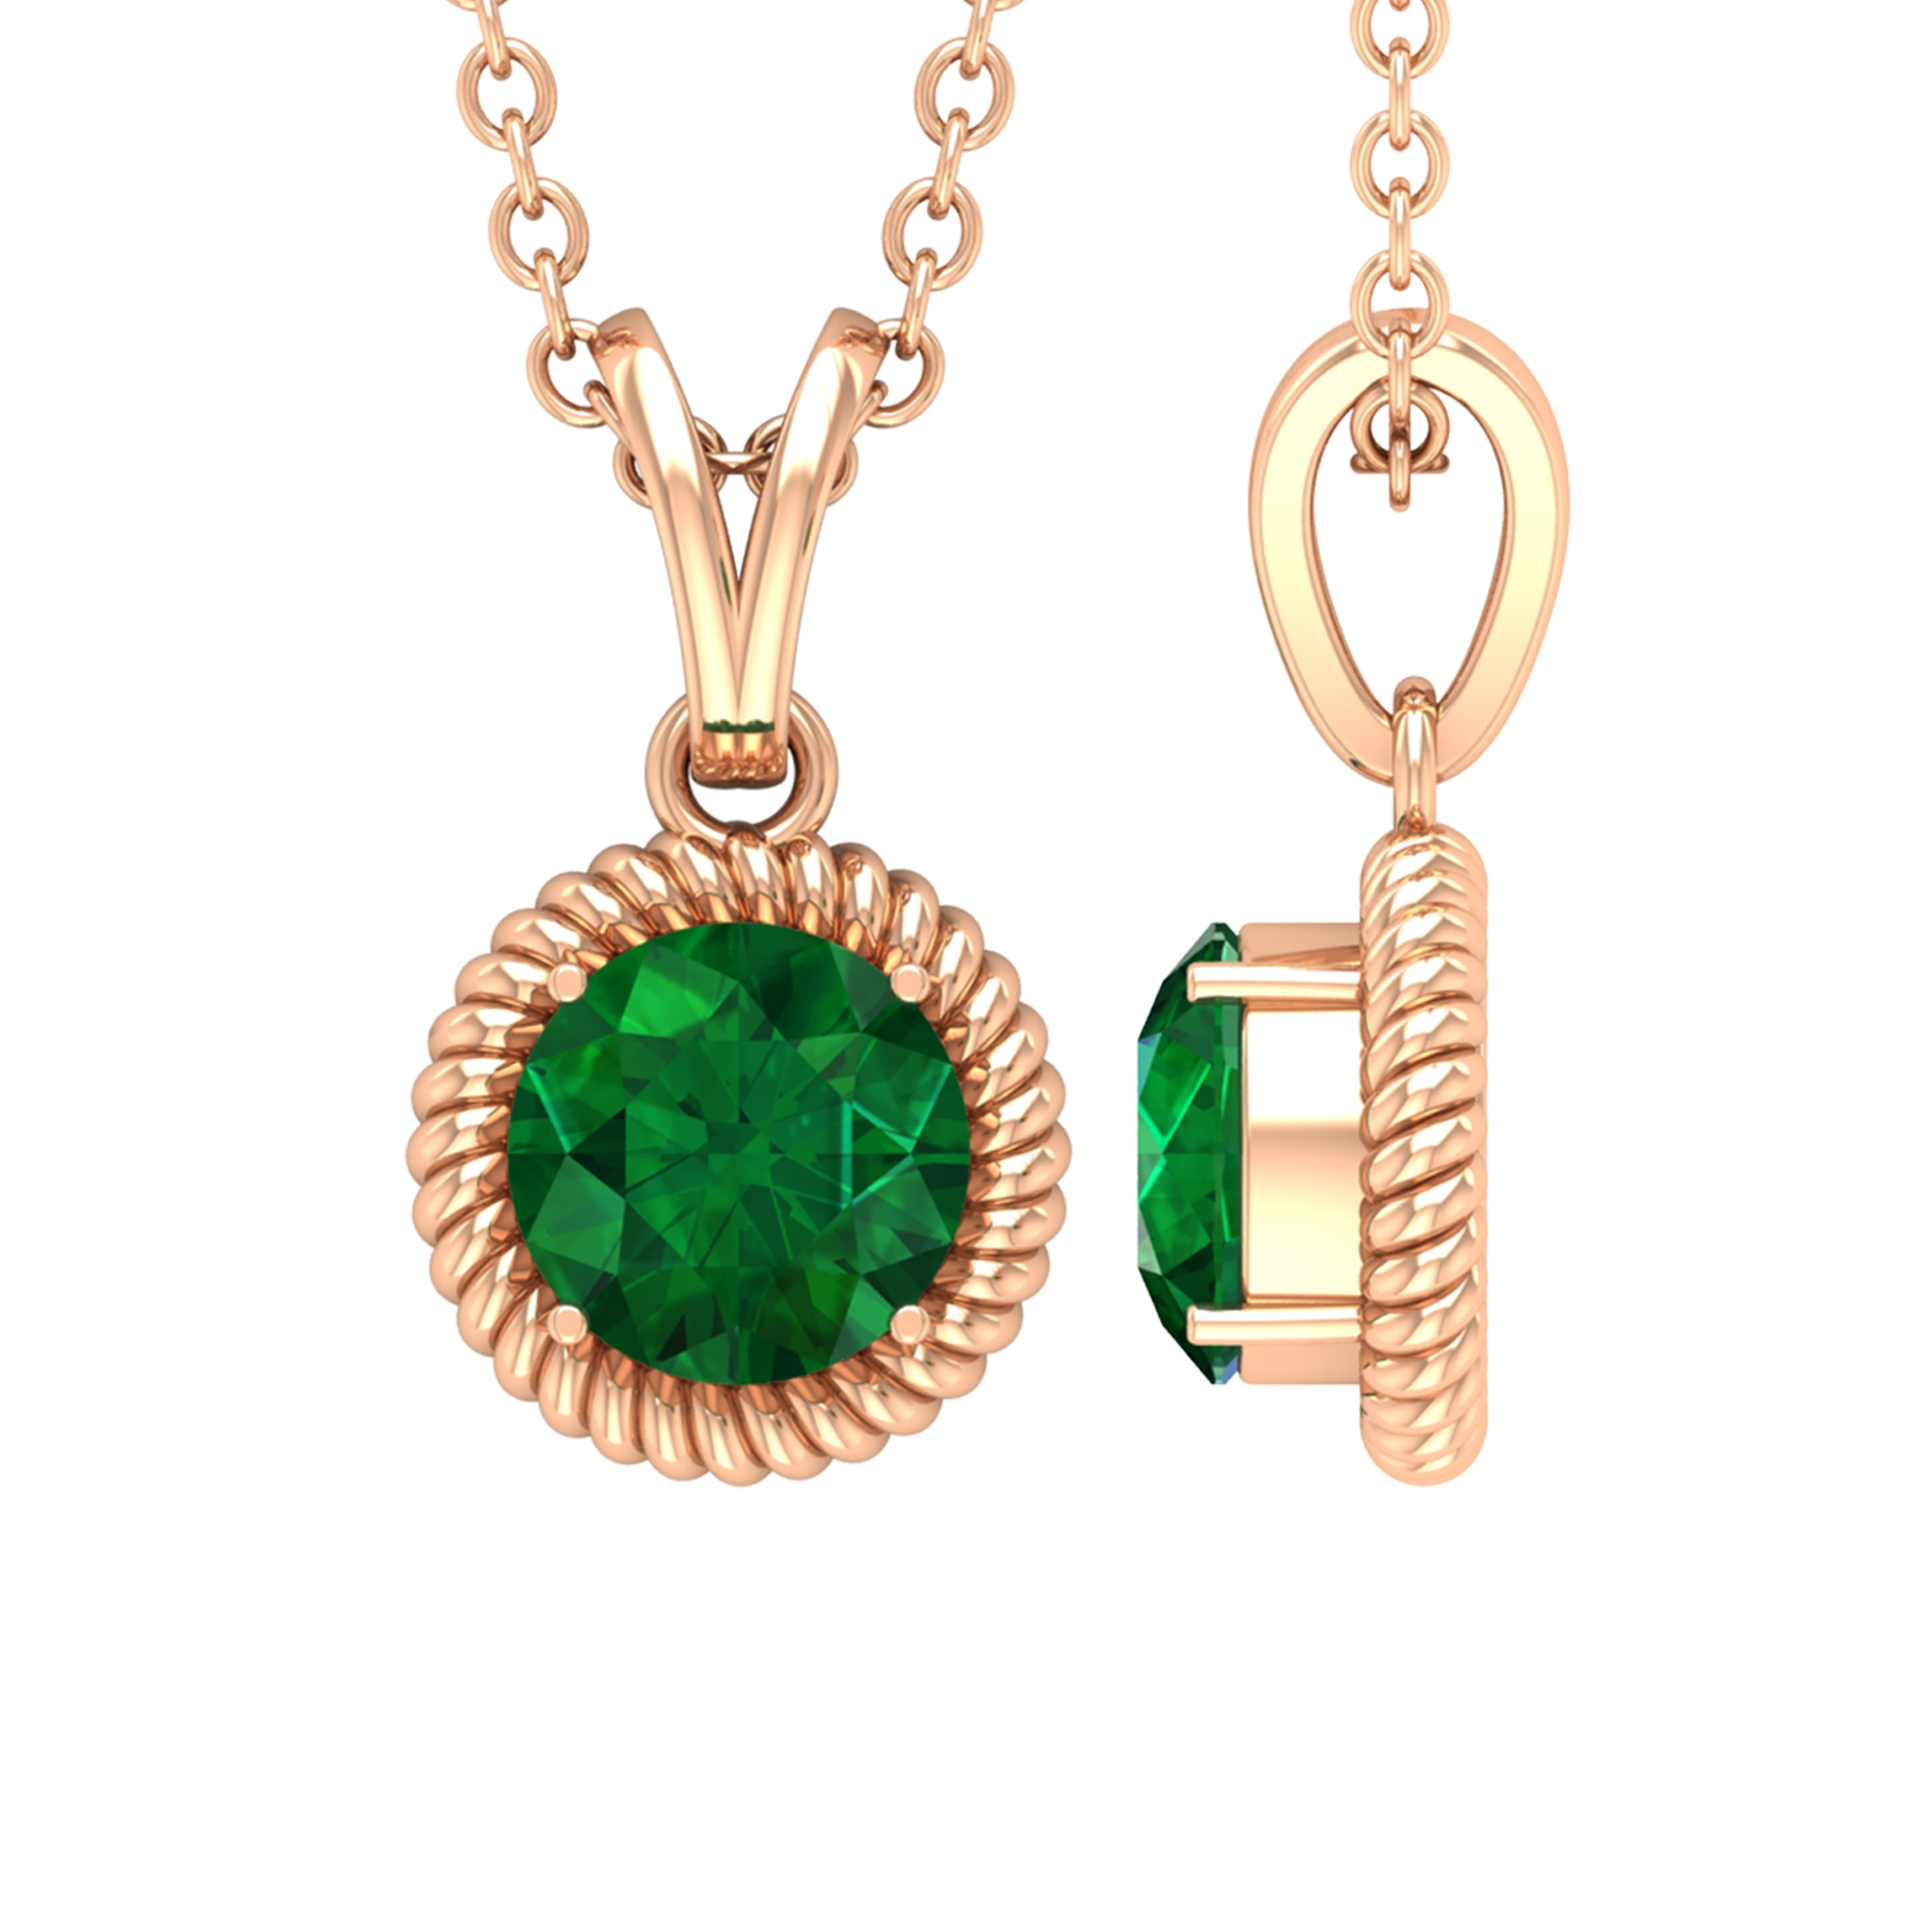 5 MM Round Cut Emerald Solitaire Pendant in 4 Prong Setting with Rabbit Ear Bail